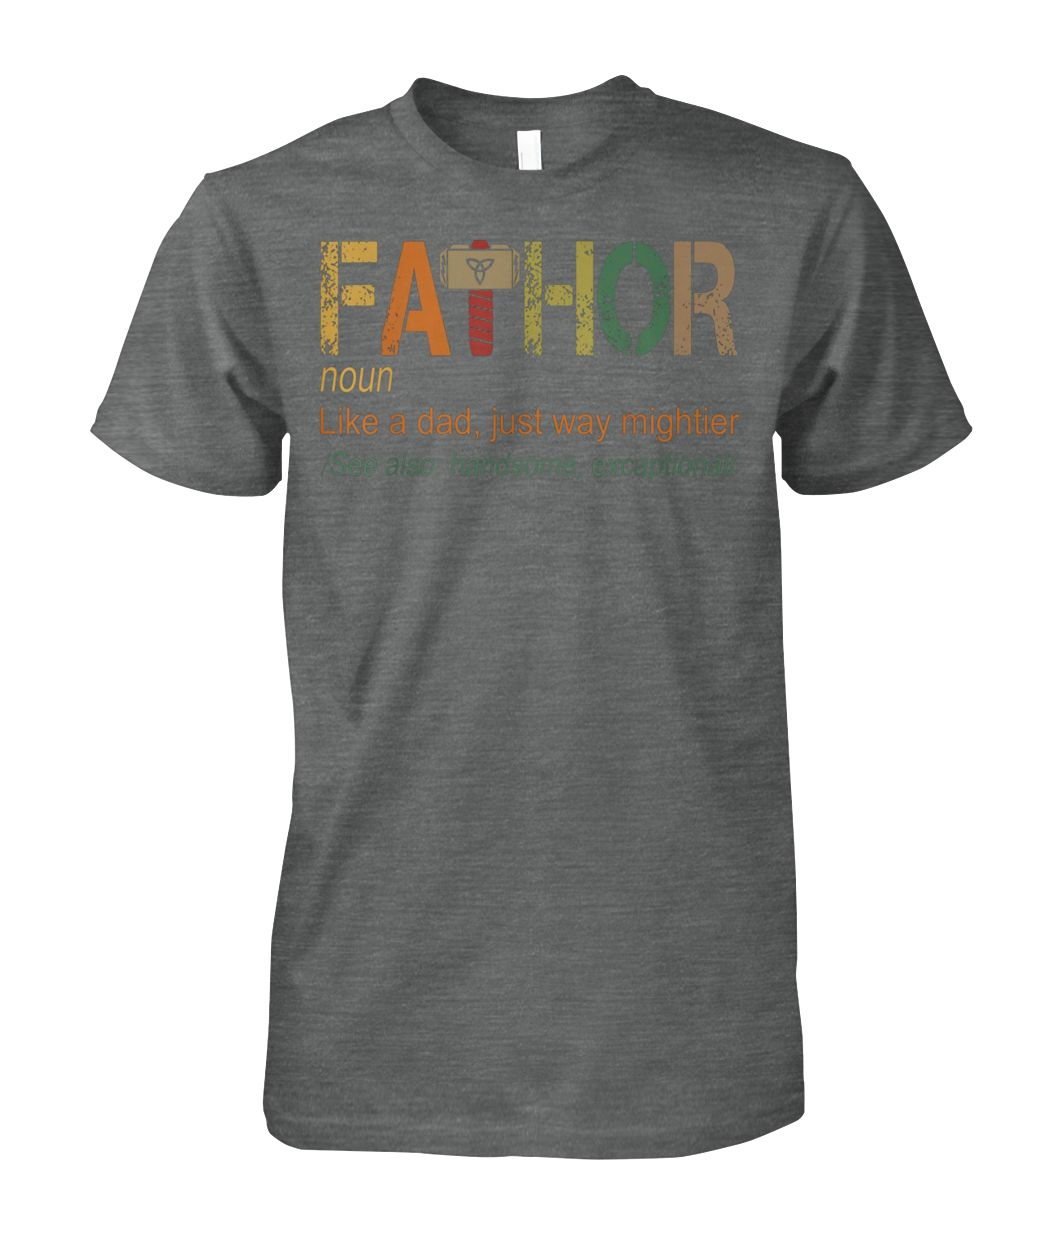 [Hot version] Marvel fa-thor like dad just way mightier hero shirt